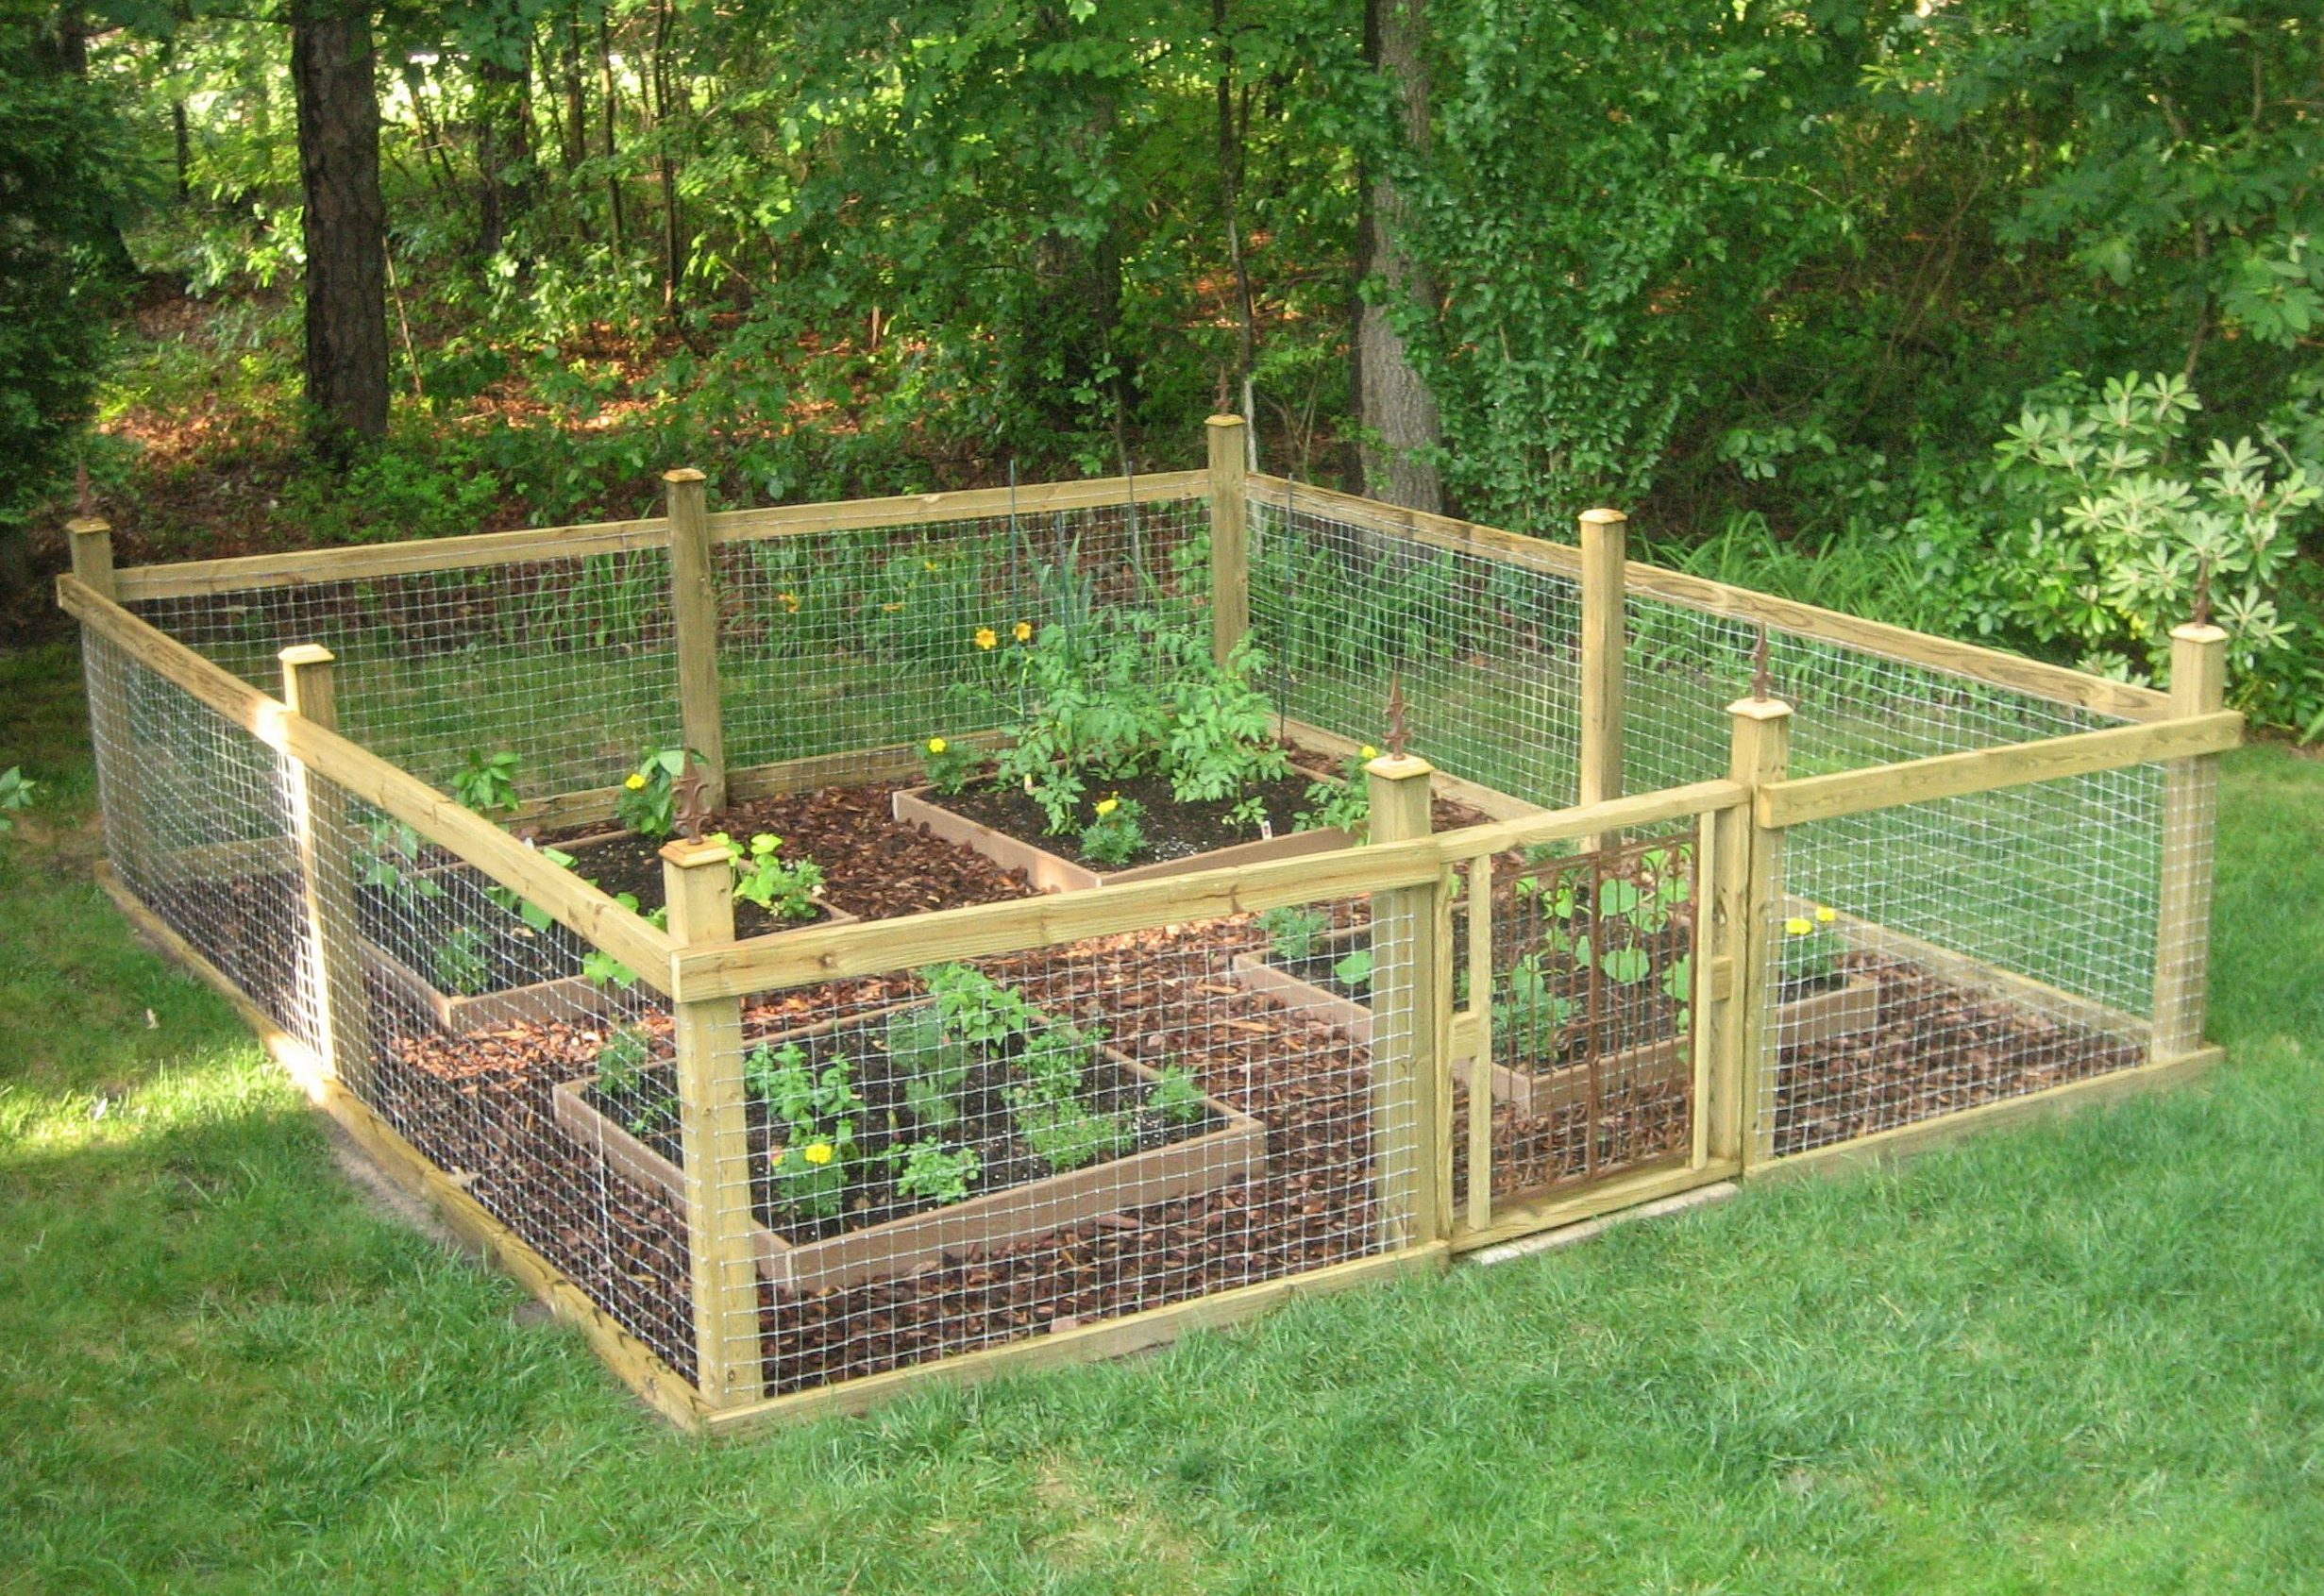 Fenced vegetable garden with wire mesh